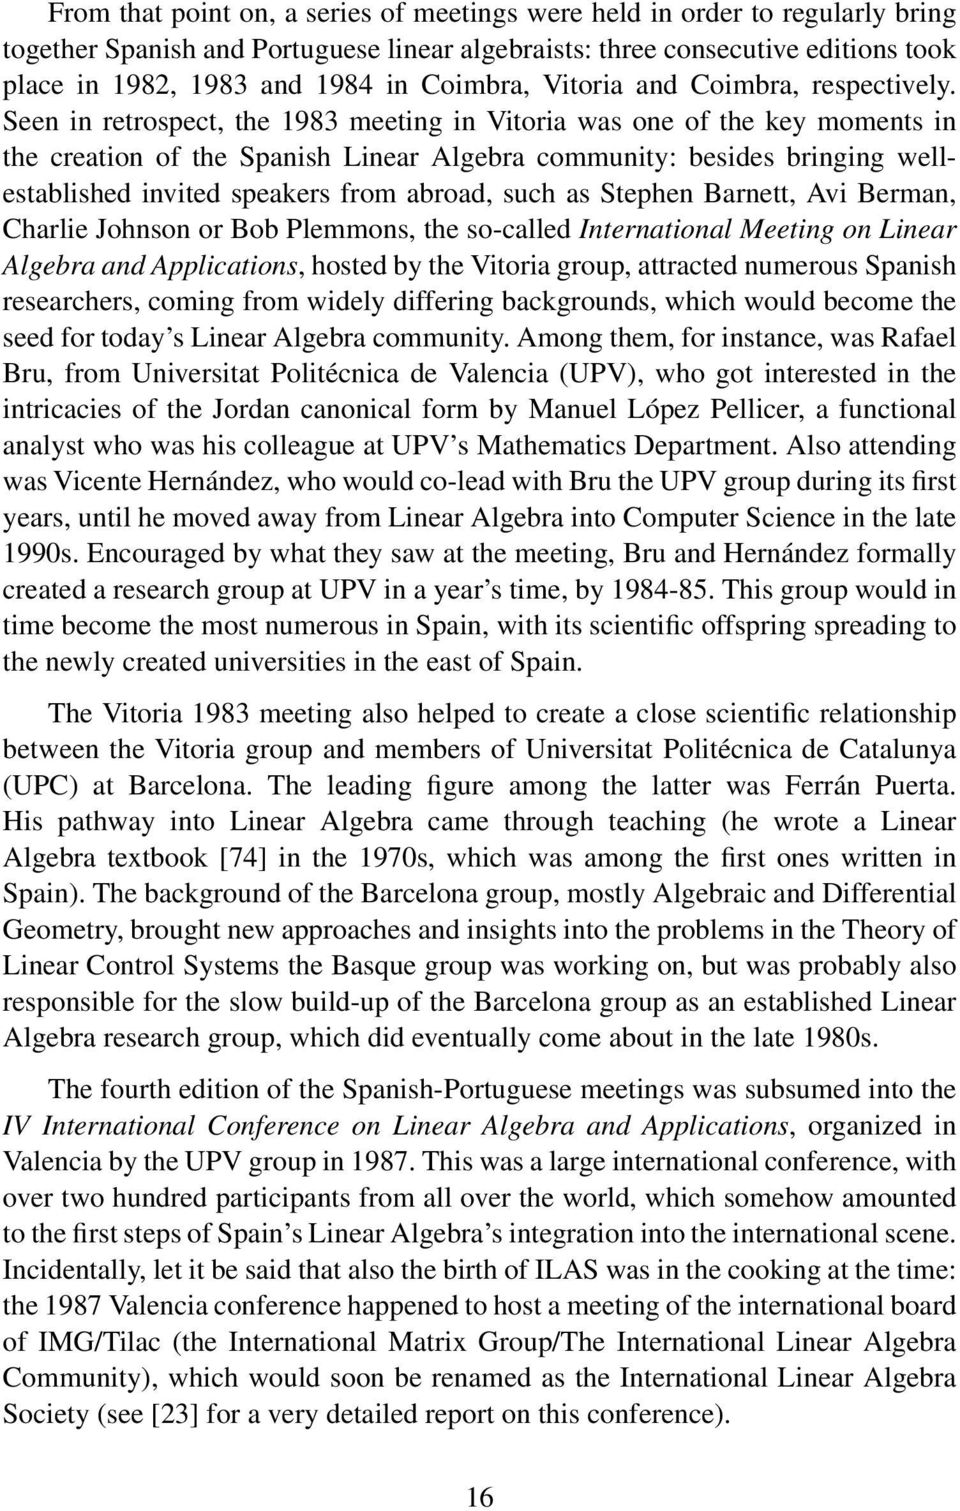 Seen in retrospect, the 1983 meeting in Vitoria was one of the key moments in the creation of the Spanish Linear Algebra community: besides bringing wellestablished invited speakers from abroad, such